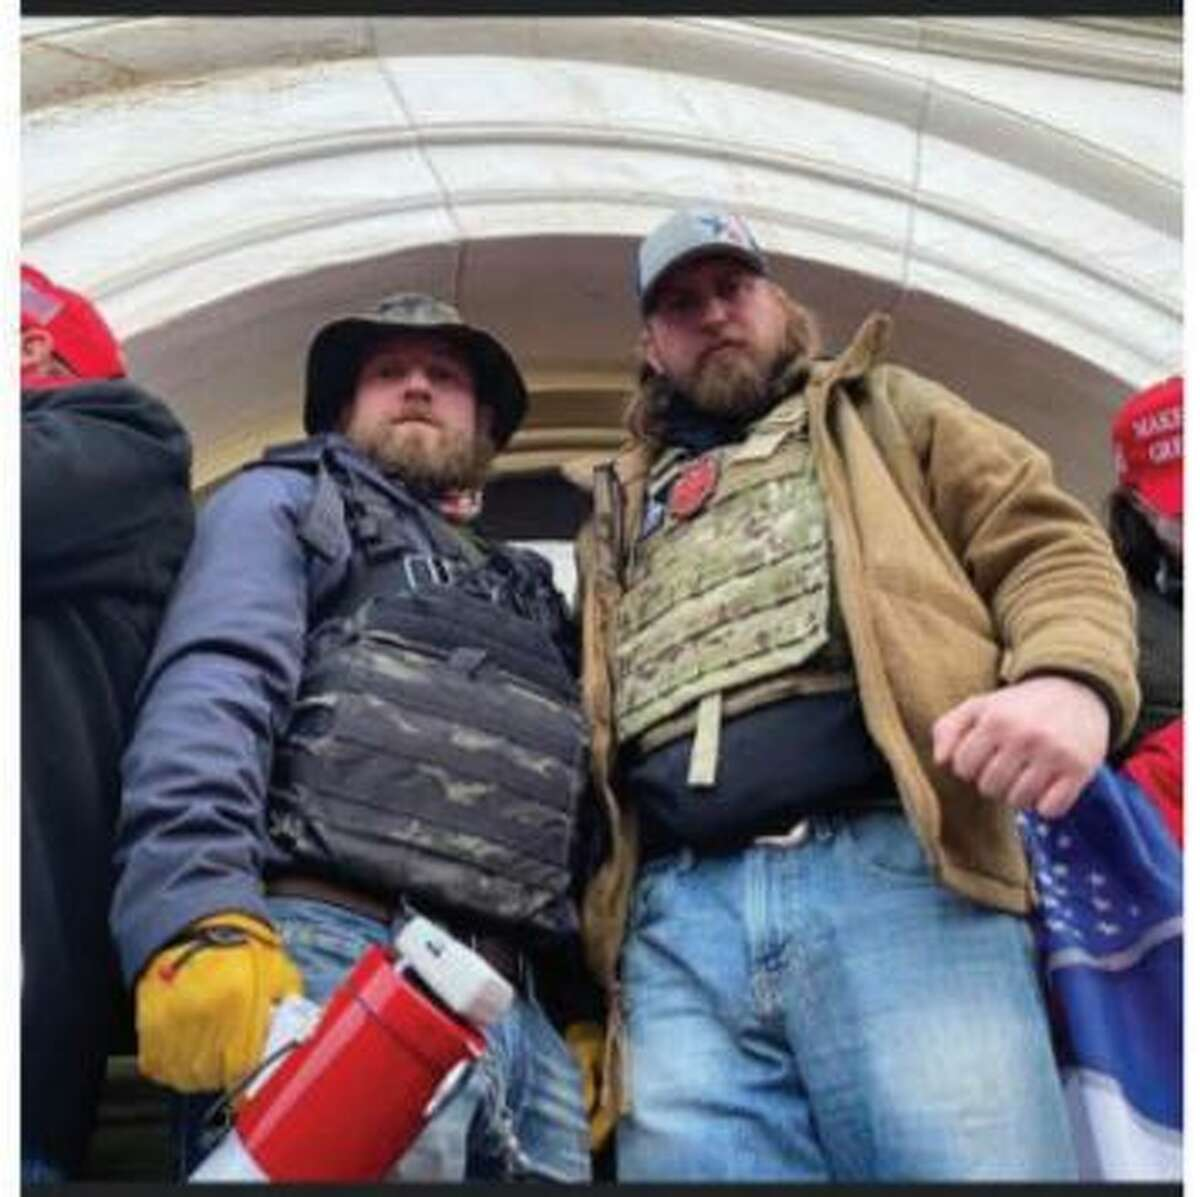 Ryan Nichols, left, and Alex Harkrider stand in front of a busted window at the U.S. Capitol with weapons and tactical gear during the Jan. 6 riot. Both East Texas men now face federal charges.